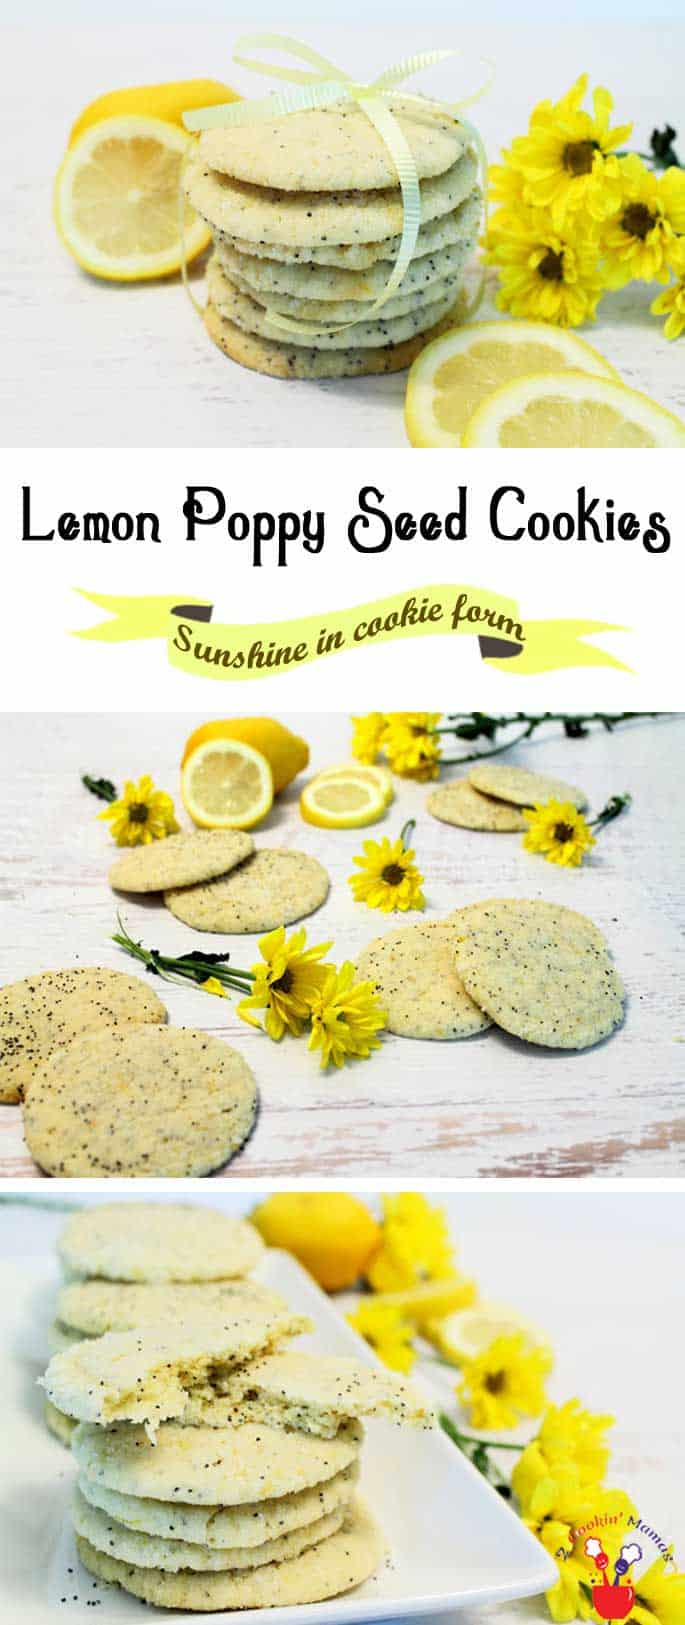 Lemon Poppy Seed Cookies | 2 Cookin Mamas Celebrate summer with these Lemon Poppy Seed Cookies. Zesty cookies that pop with lemon flavor. Soft & chewy inside with a sugary crunch outside.